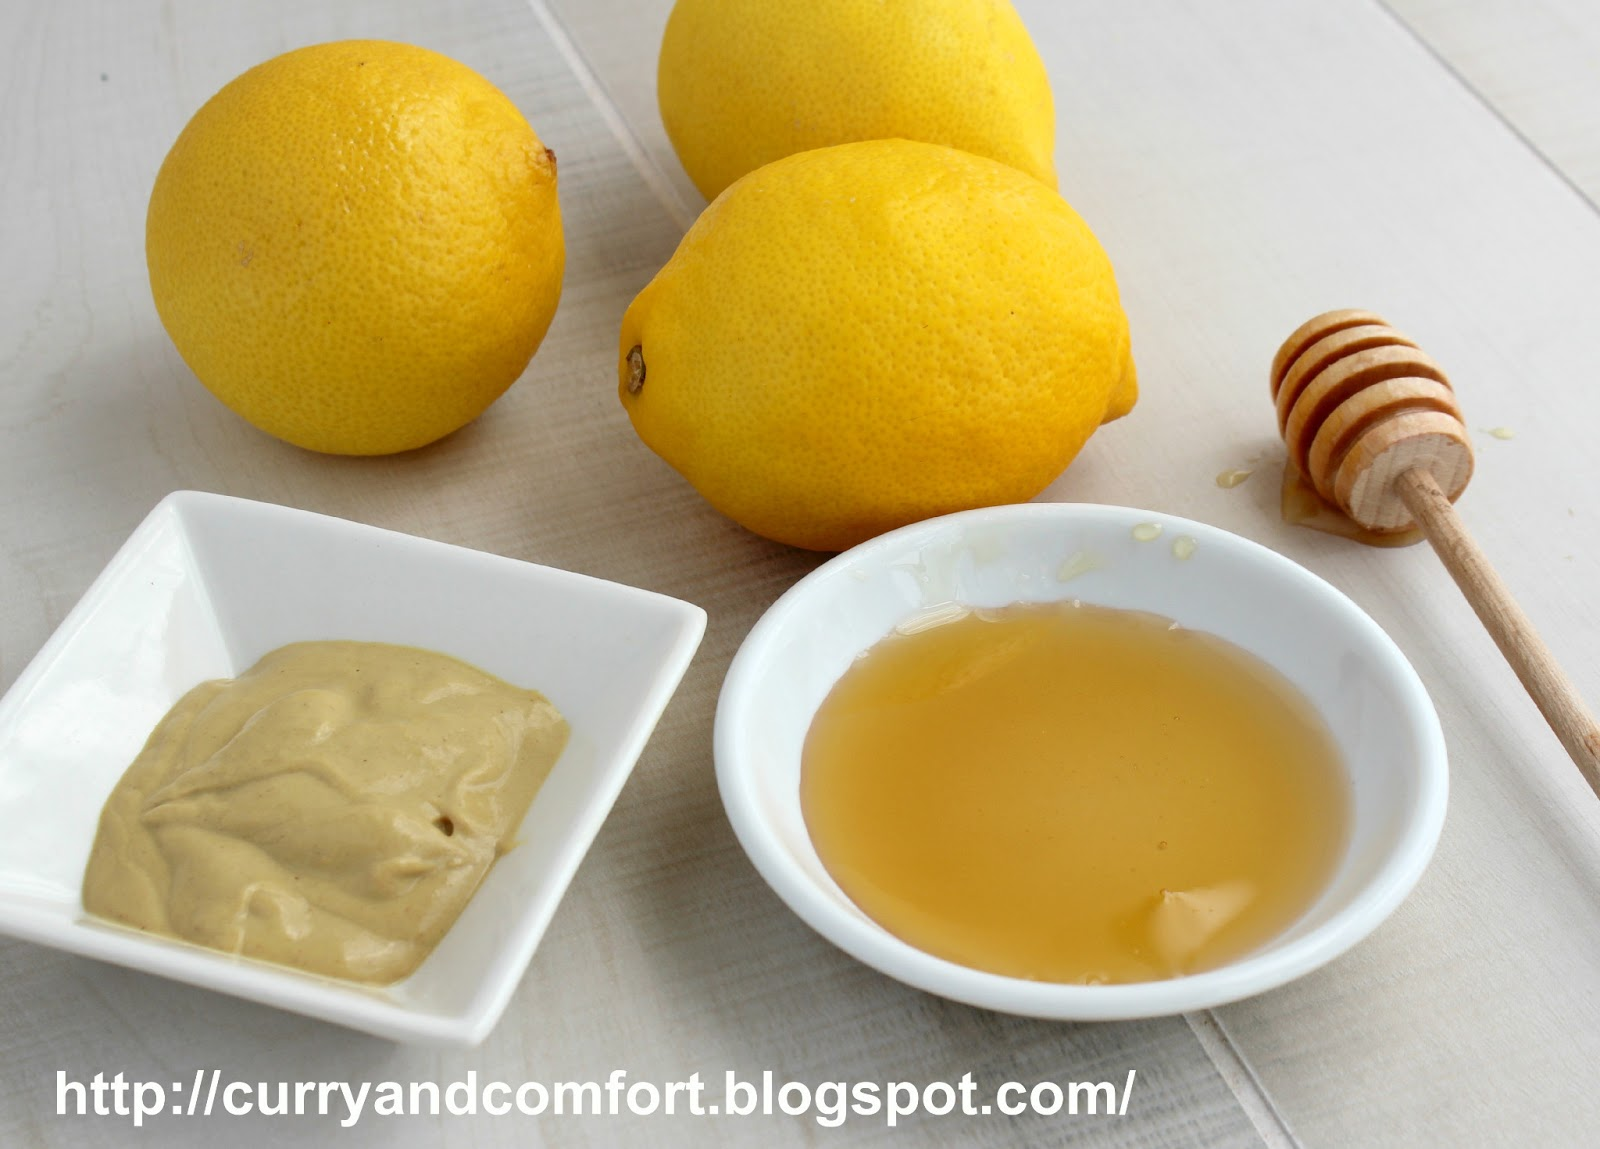 Curry and Comfort: Lemon Honey Mustard Salad Dressing